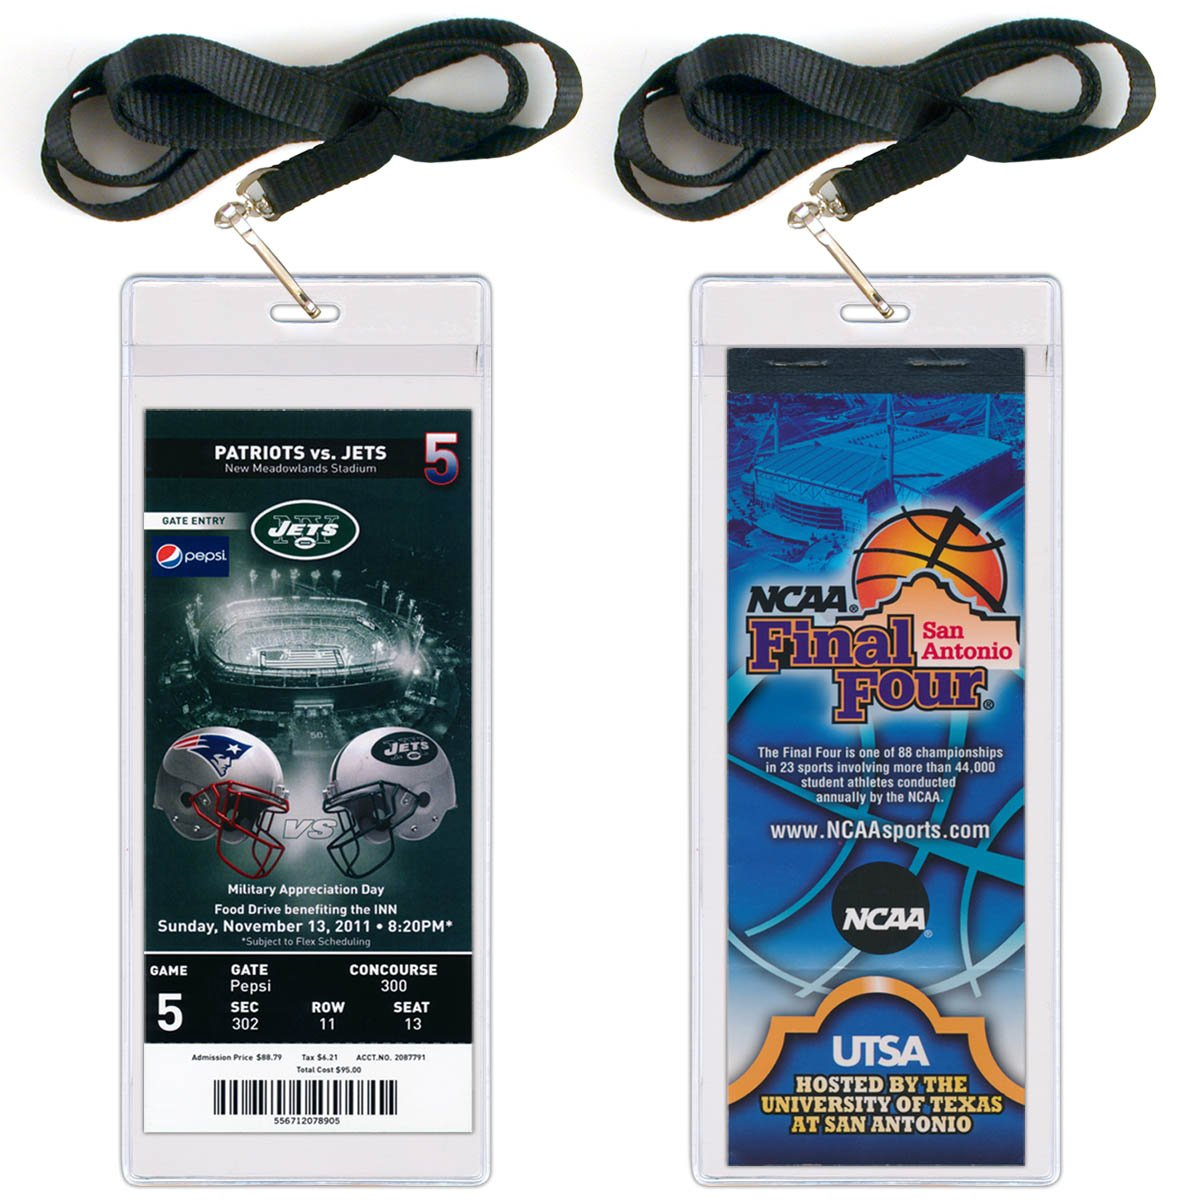 StoreSMART - Event Ticket Holders with Lanyard - 3 x 8 - 5-Pack - LY3019S-5 StoreSMART®